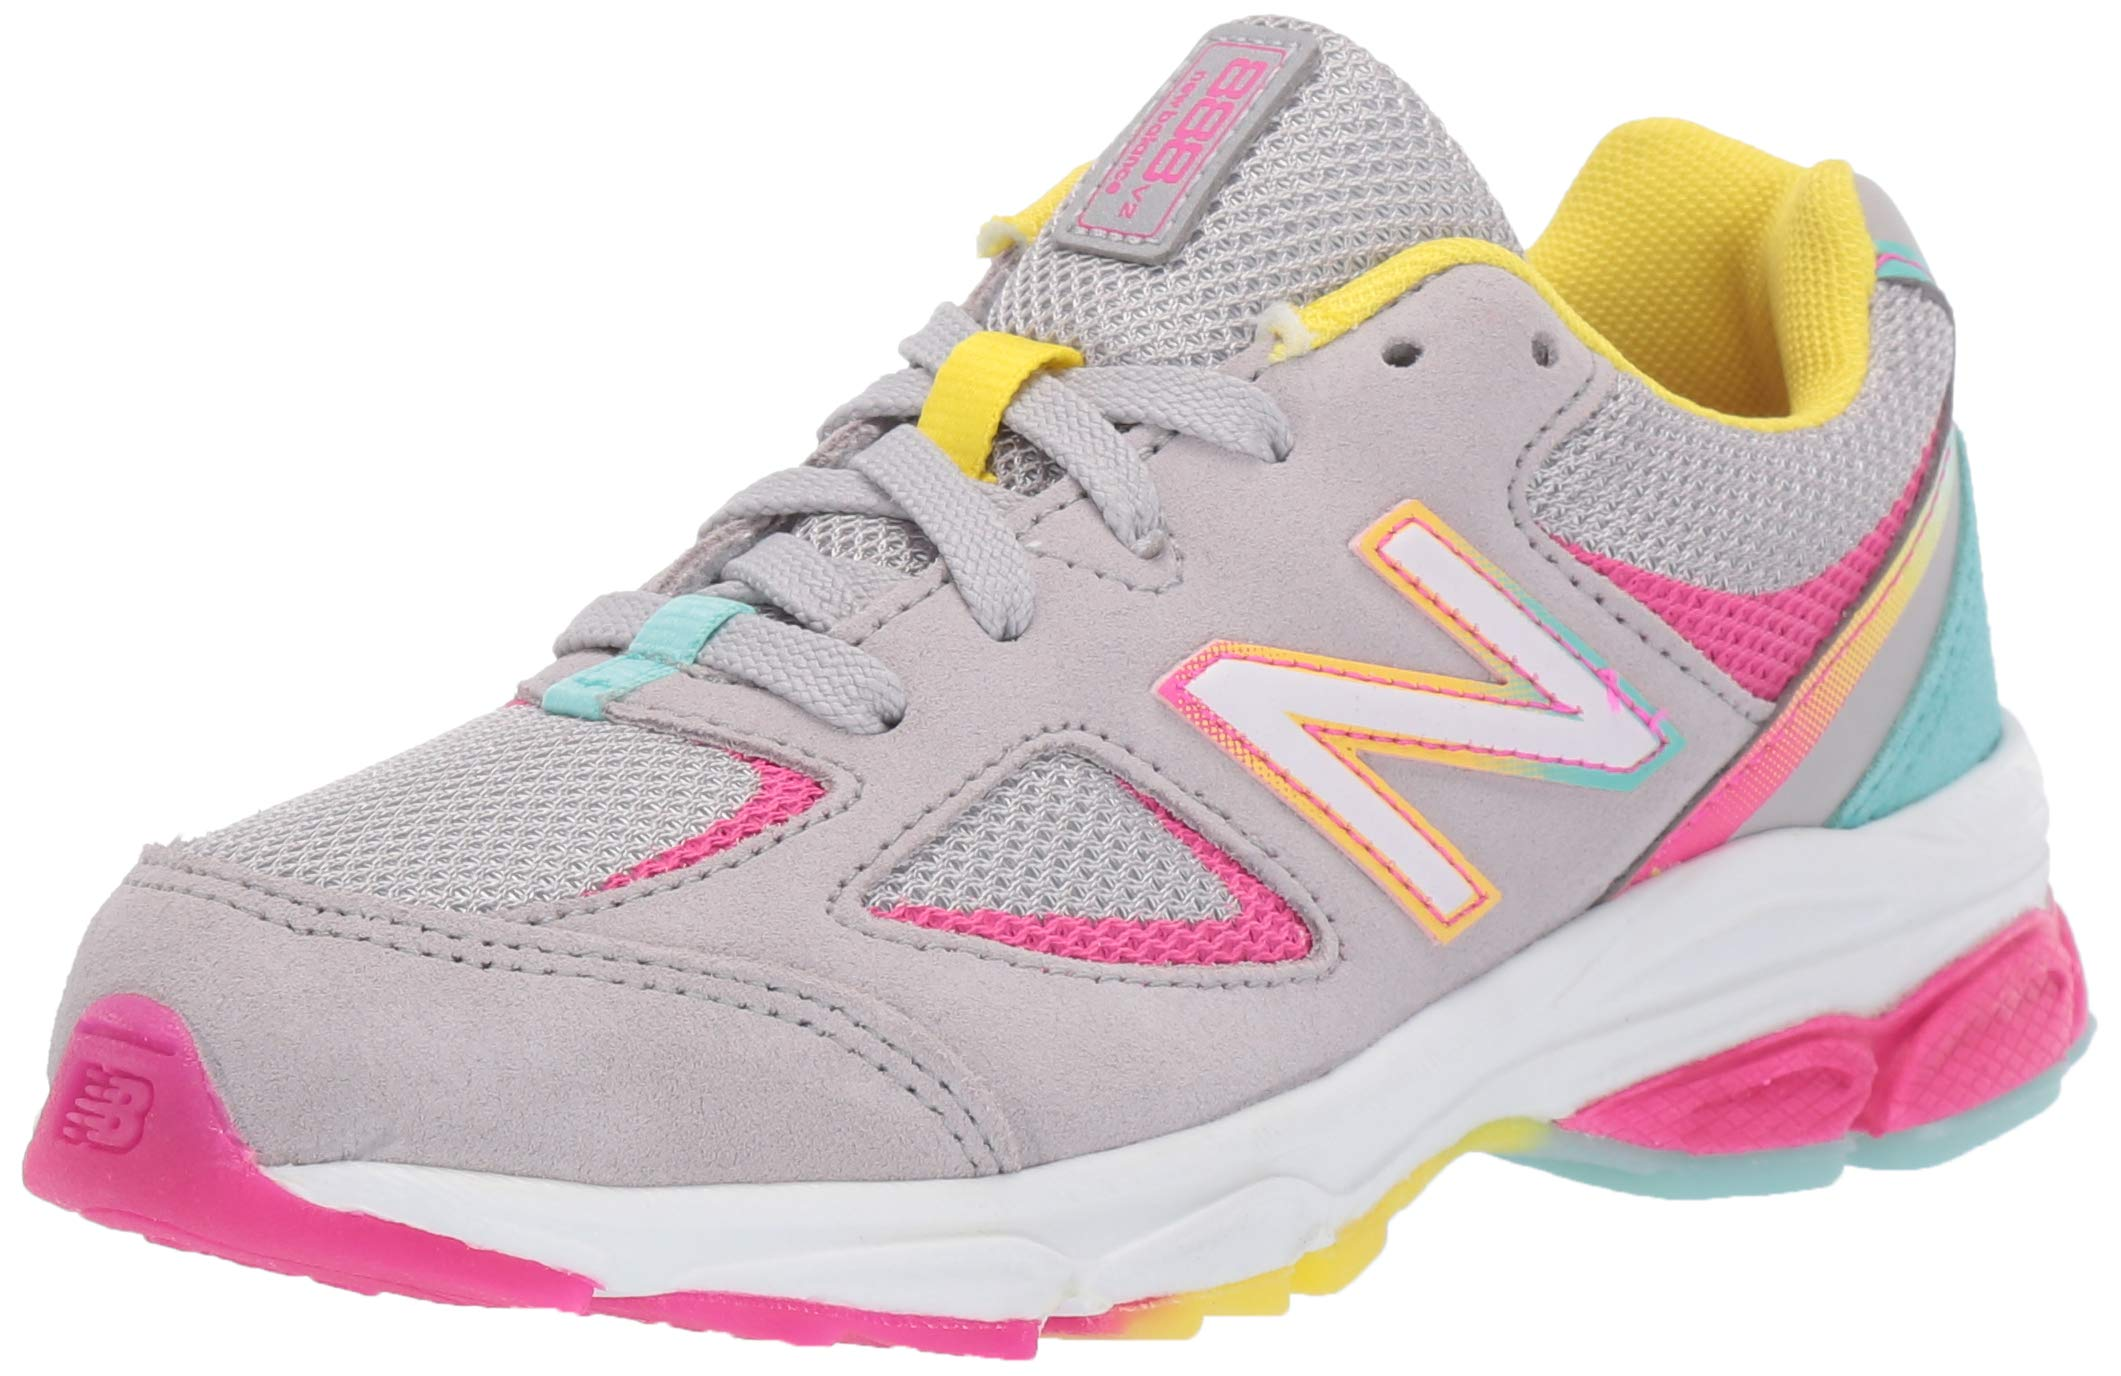 Grey//Rainbow New Balance Girls 888v2 Hook and Loop Running Shoe 9 M US Toddler